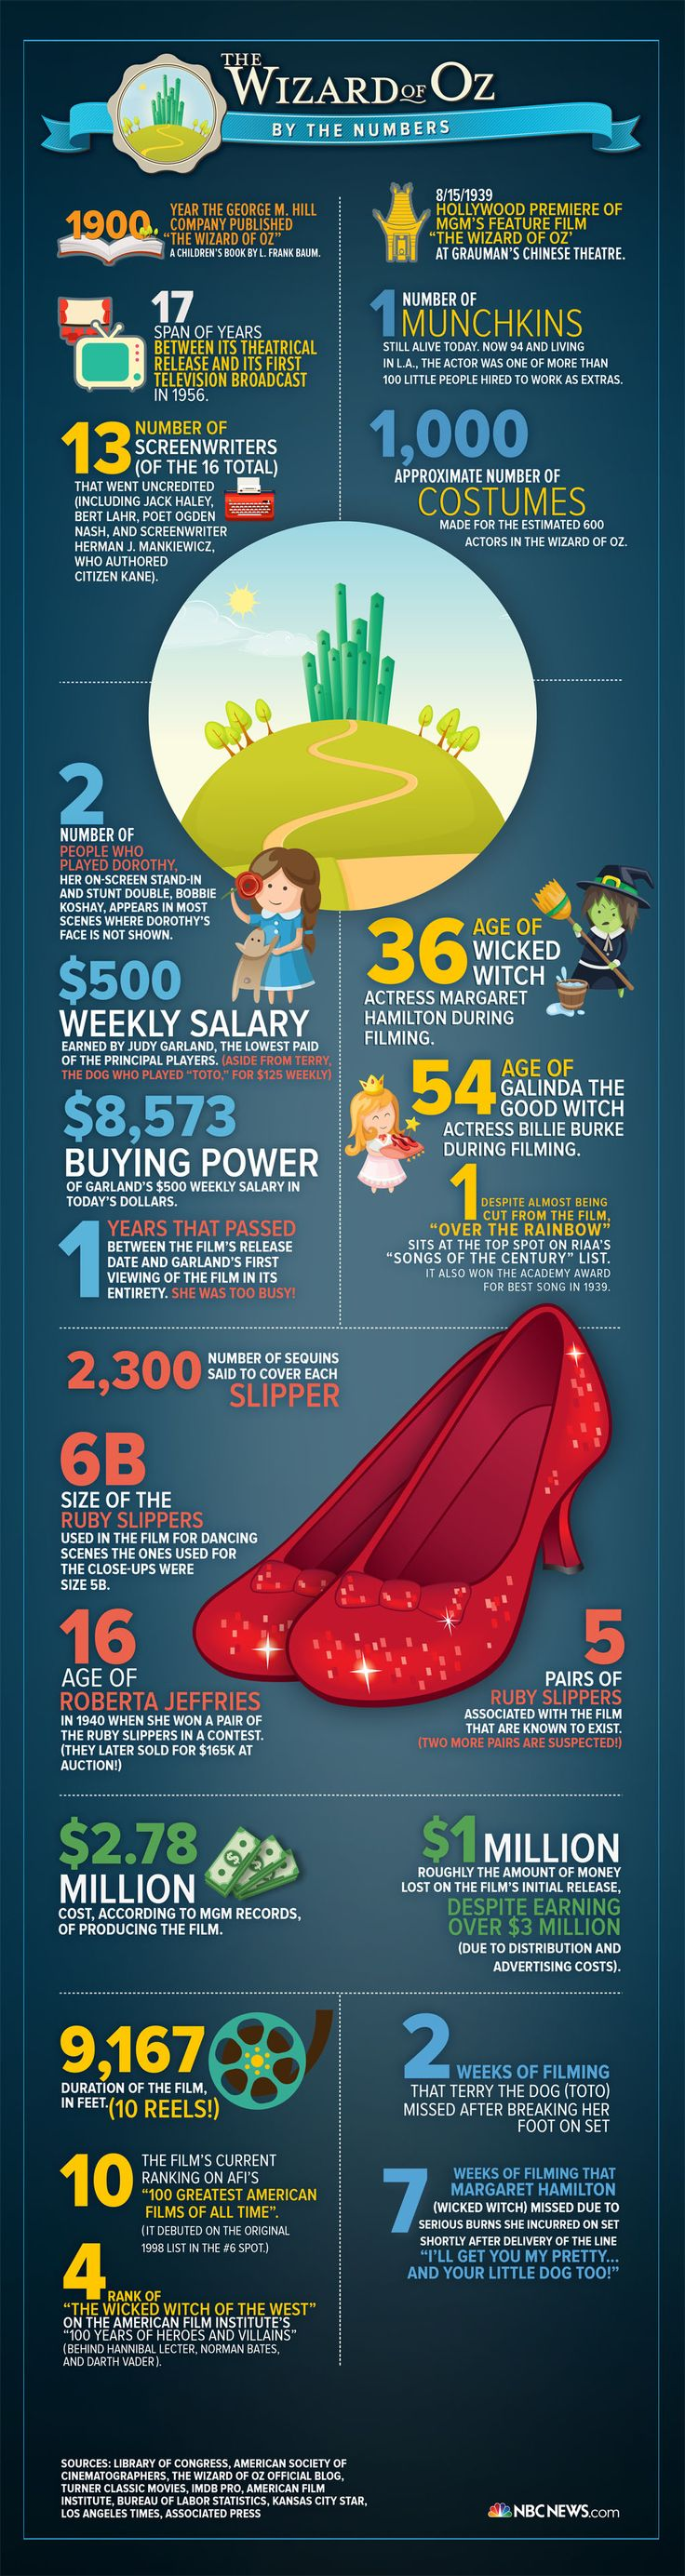 ideas about the wizard the wizard movie infographic wizard of oz at 75